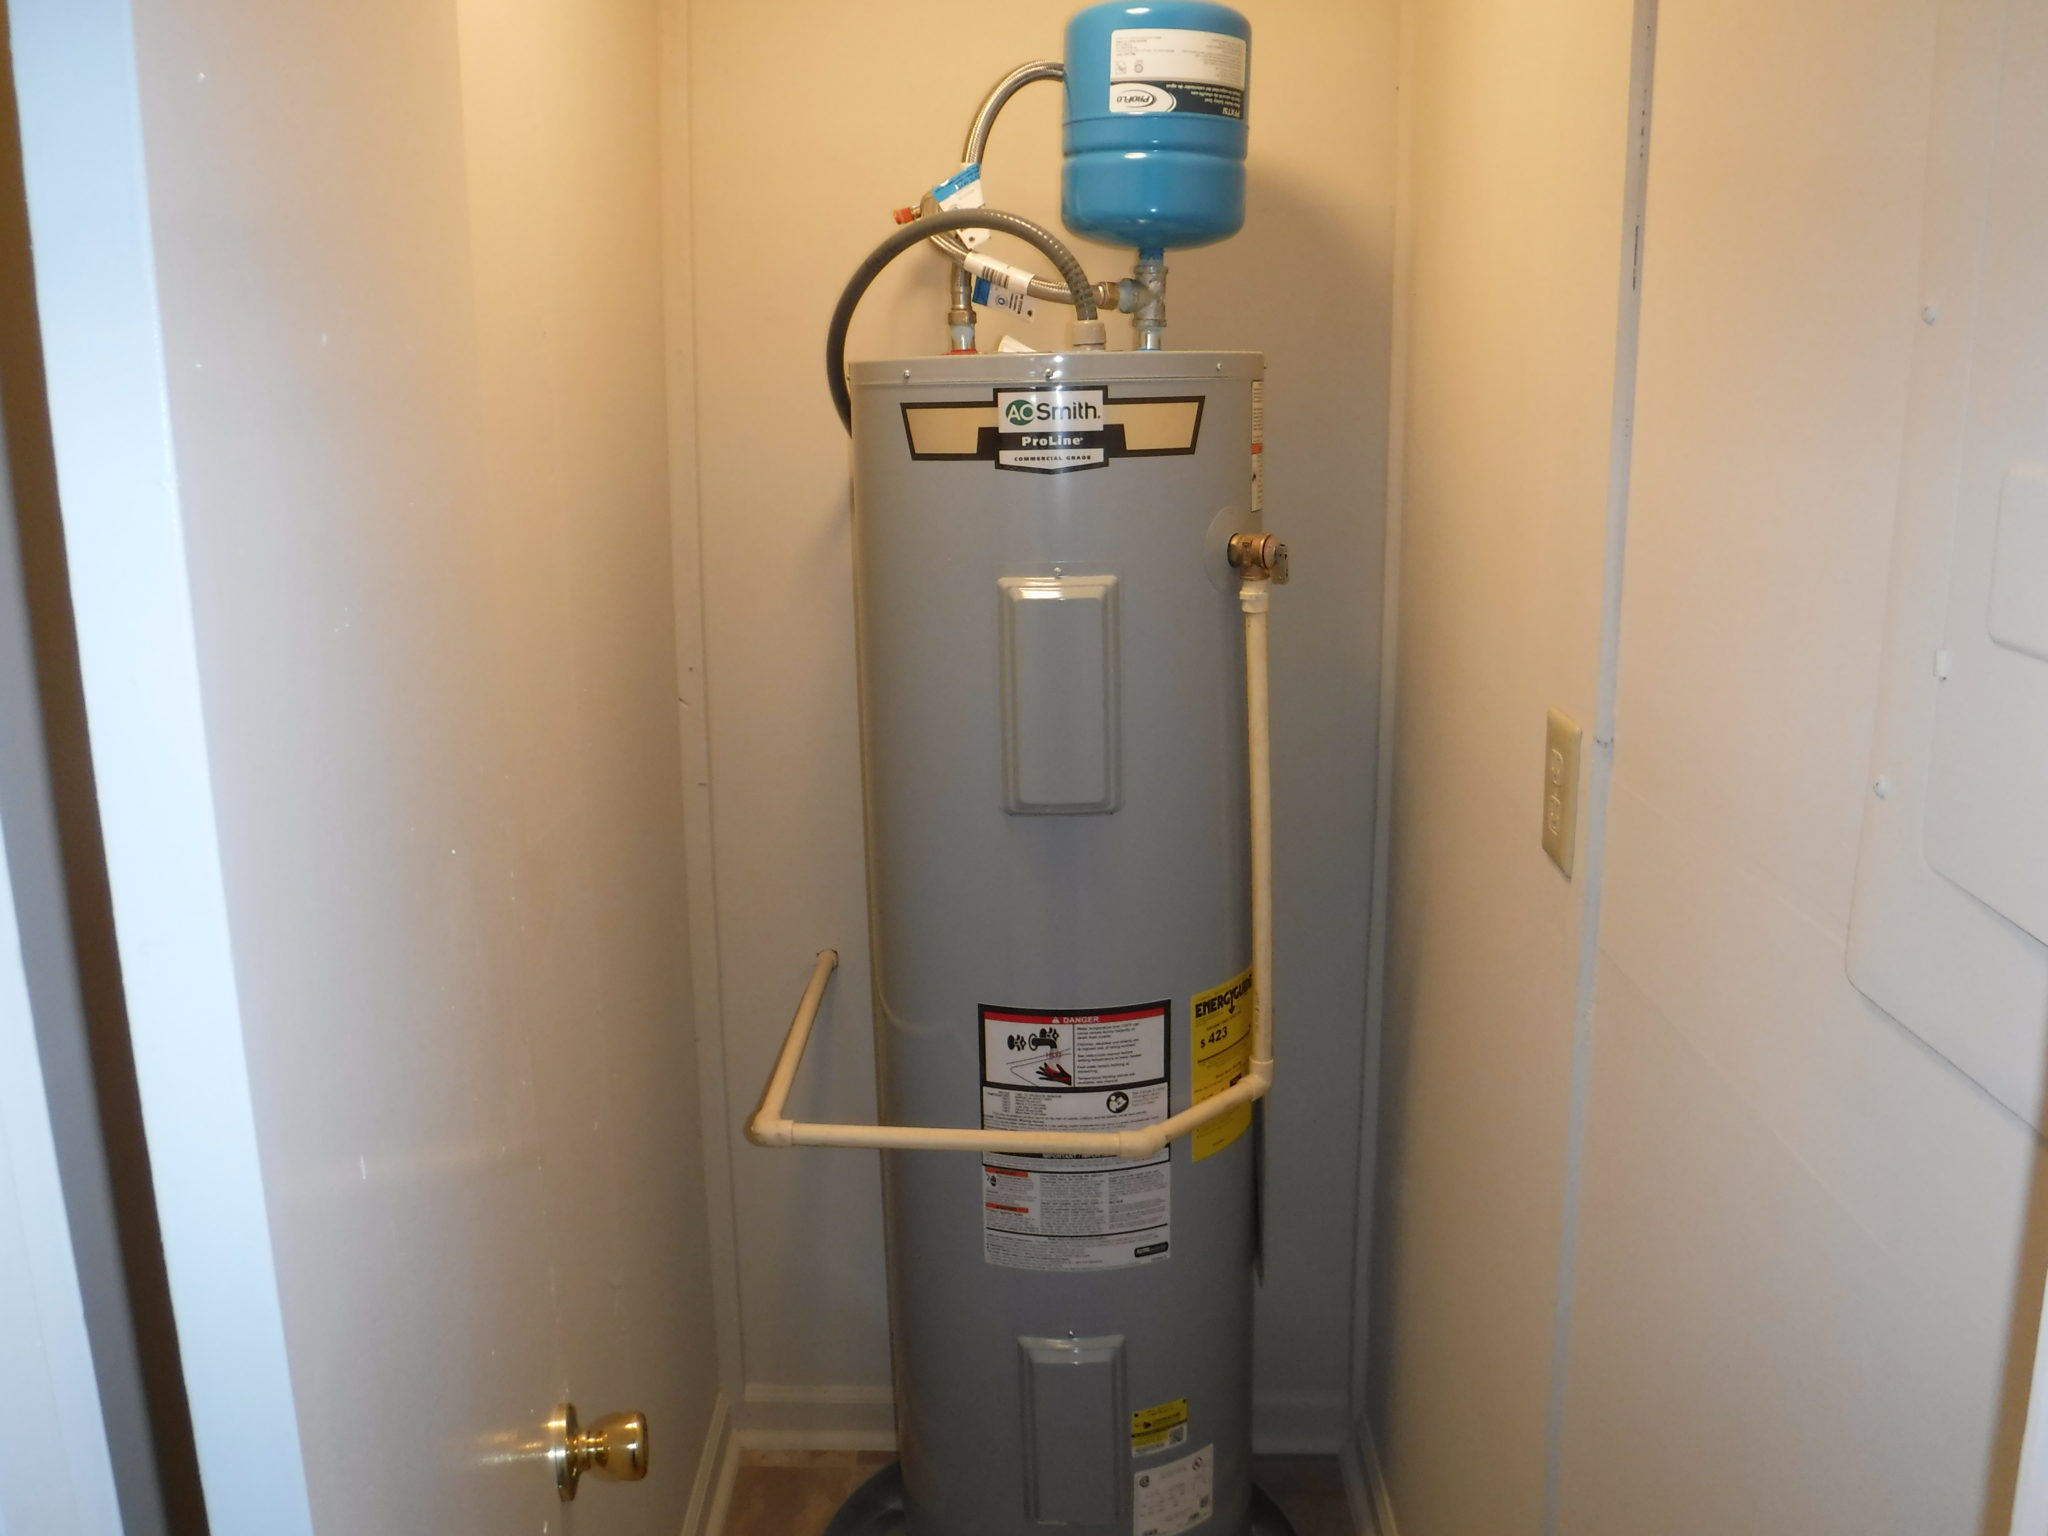 40 Gallon Electric Hot Water Tank Water Ionizer